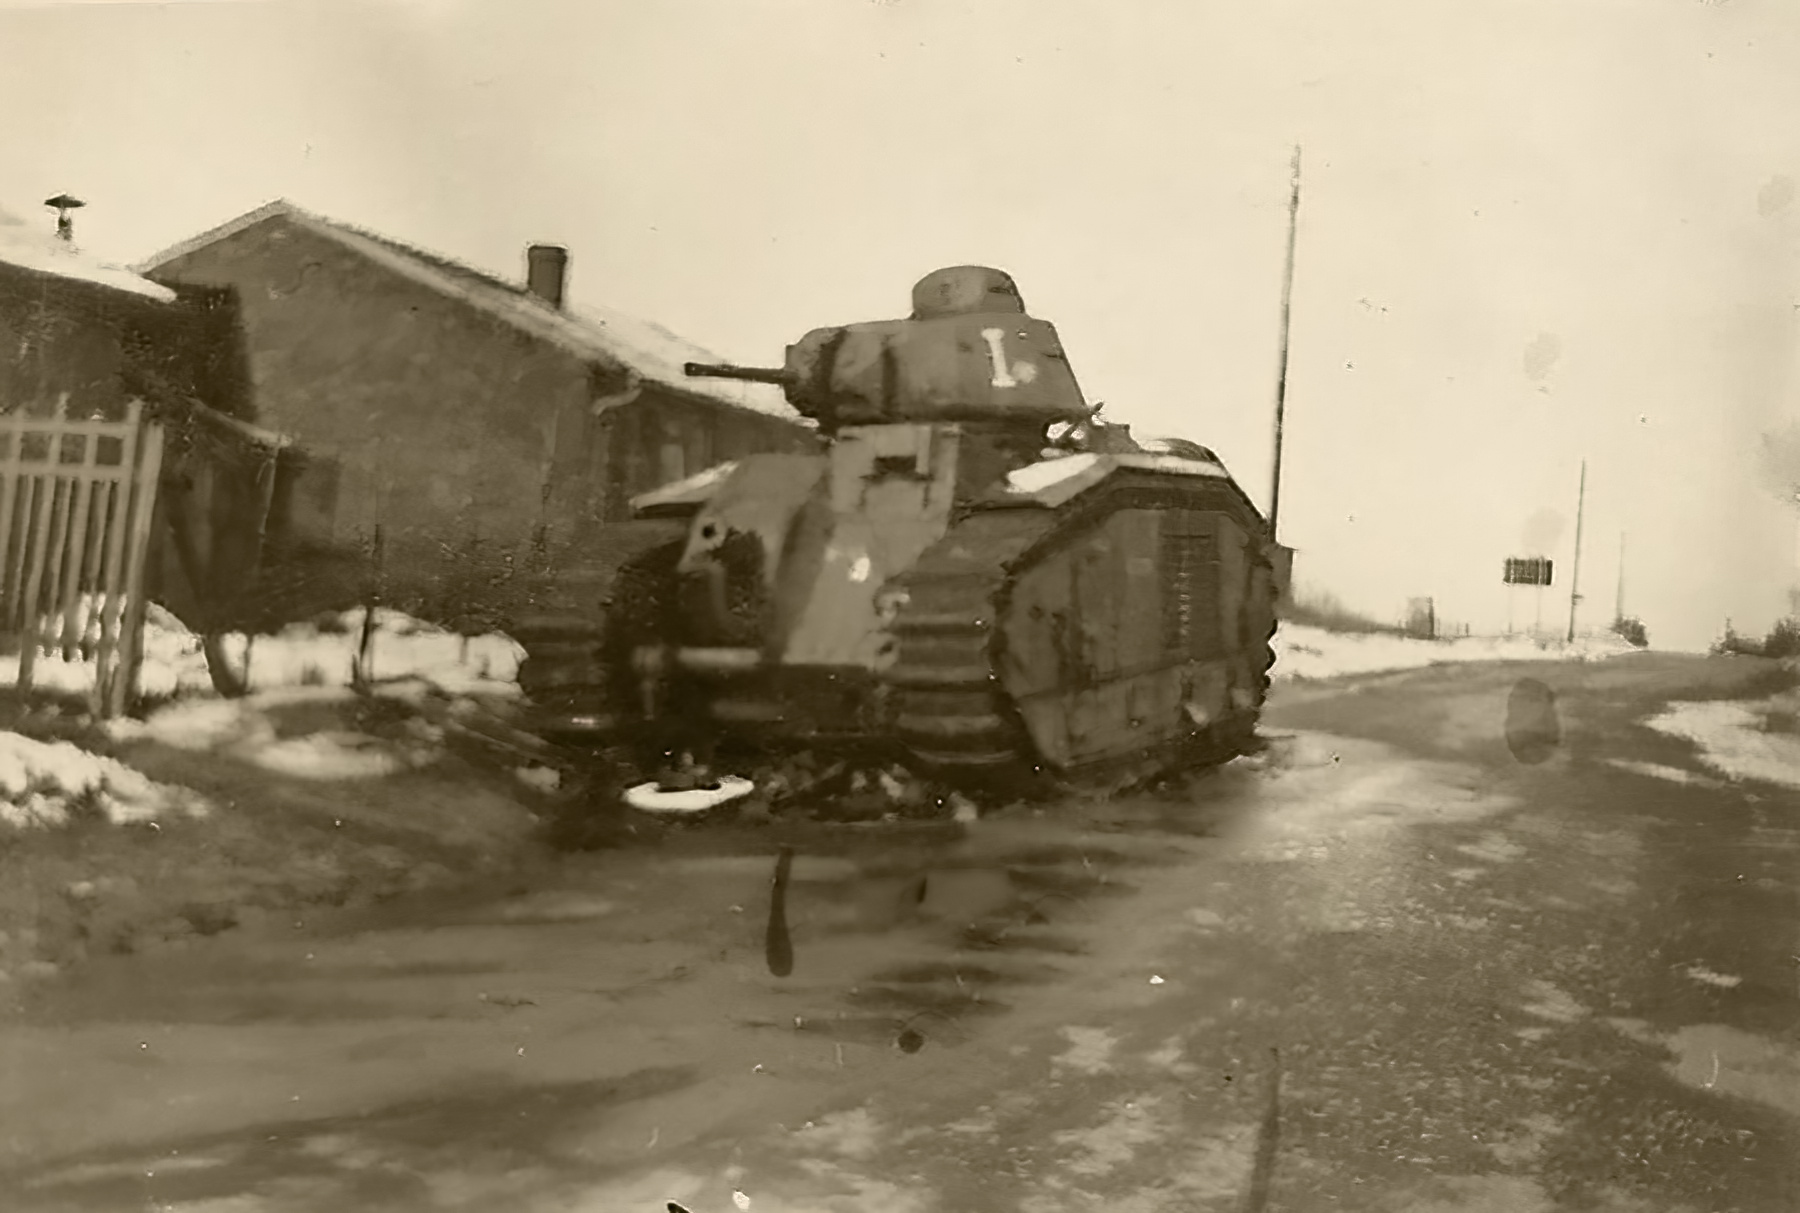 French Army Renault Char B1bis White I during the battle of France 1940 ebay 01